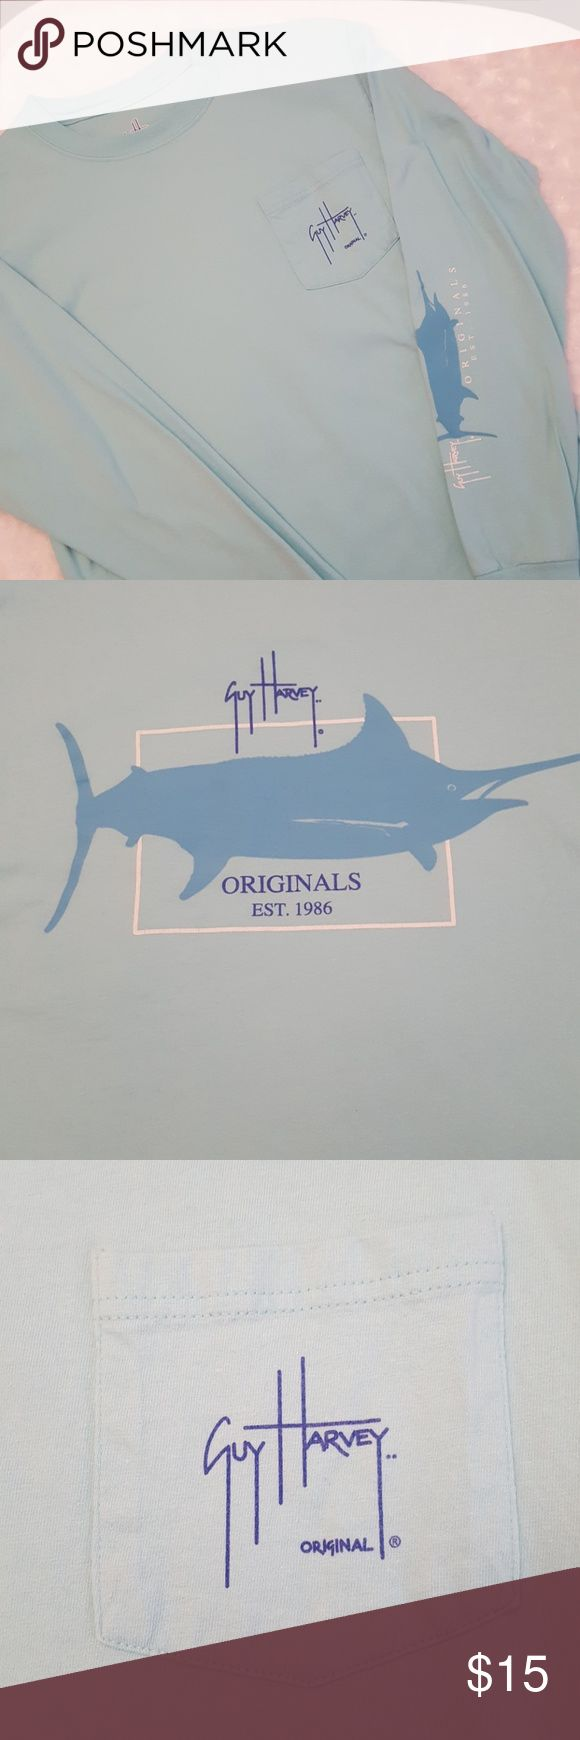 Aqua colored Long Sleeve, Guy Harvey shirt! This shirt is super soft and is in euc! You can see what the back of the shirt looks like in the second photo. It has a pocket on the left side of the chest. No stains or flaws. Guy Harvey Shirts Tees - Long Sleeve